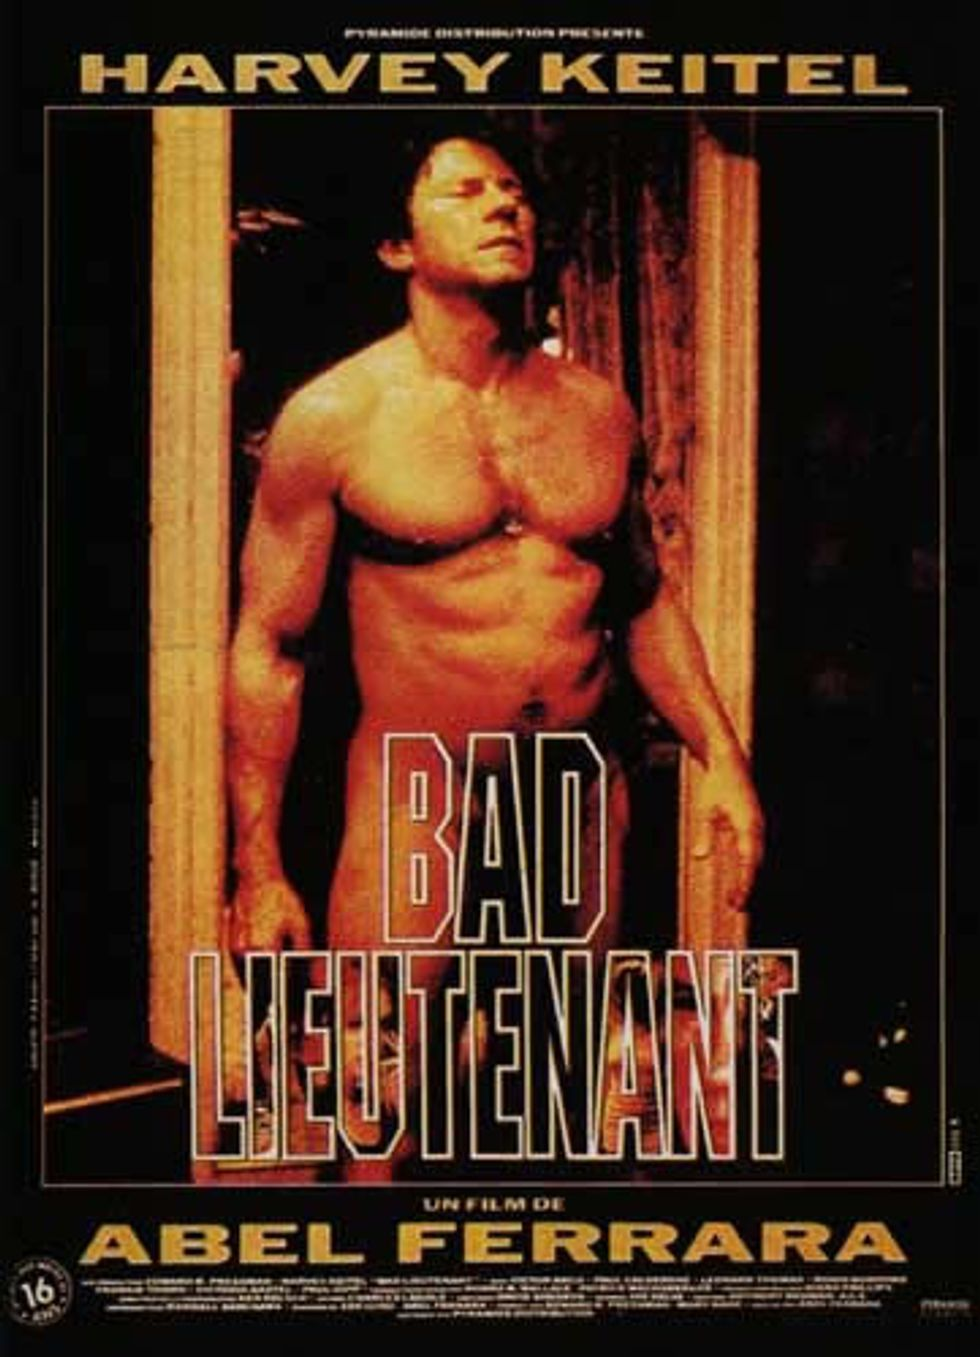 Harvey Keitel Is The Only Bad Lieutenant!